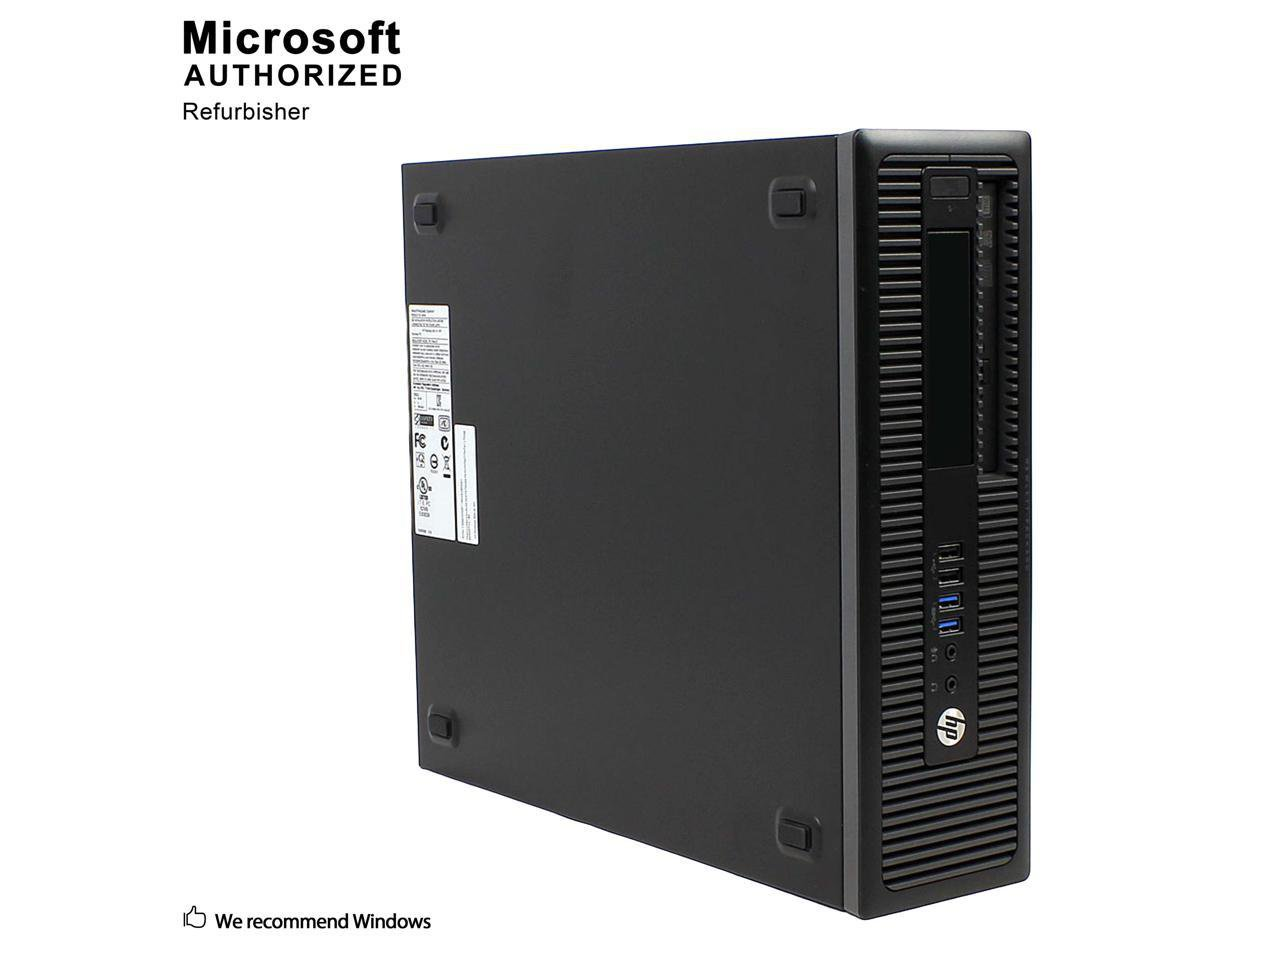 HP PRODESK 400 G1, SFF, I5 4570, 16.0 GB, SSD 480GB, DVD/RW, Windows 10 Home, Keyboard & Mouse